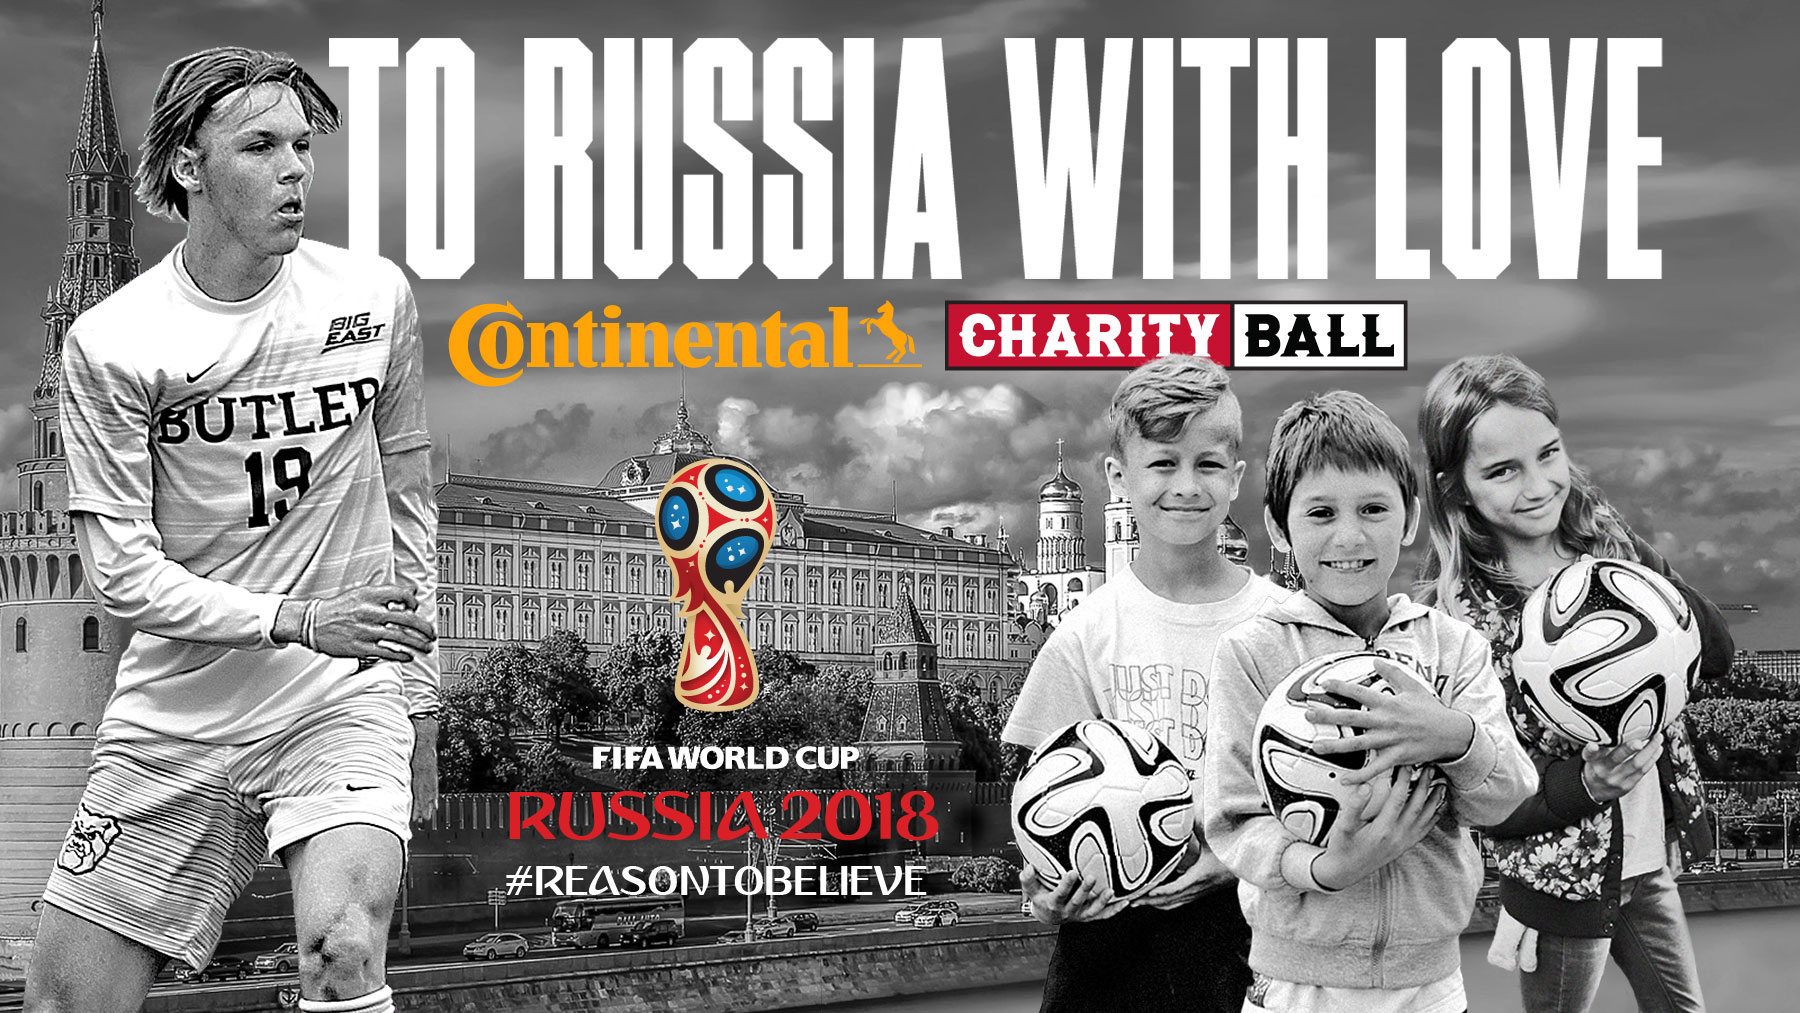 Charity Ball heads to Russia to hand-deliver soccer balls